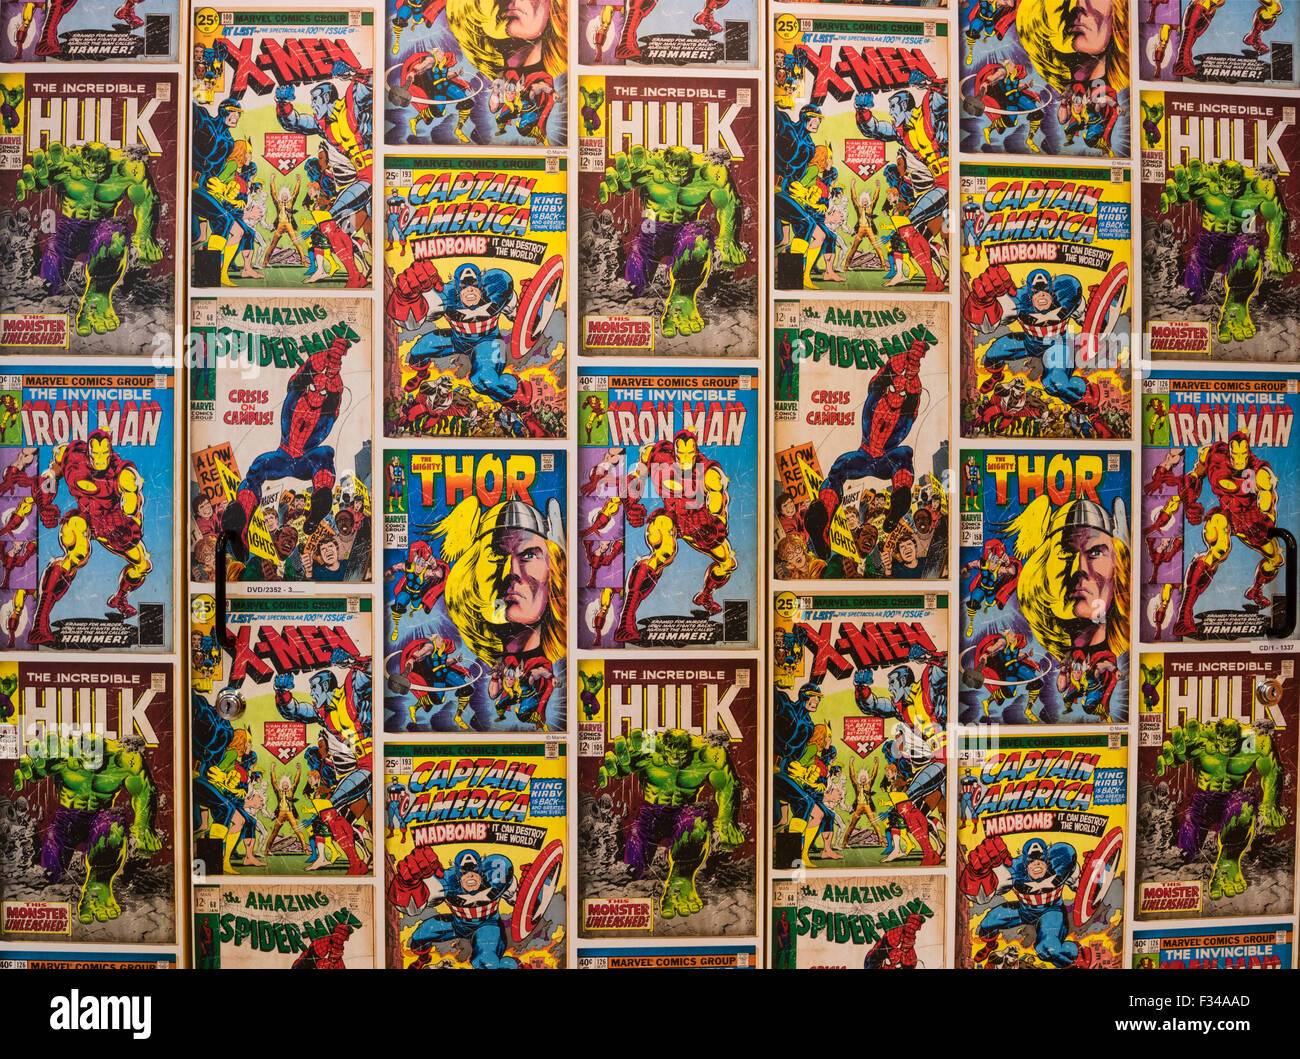 Amazing Wallpaper Marvel Vintage - wallpaper-display-created-from-covers-of-marvel-comics-featuring-marvel-F34AAD  Pictures_572434.jpg